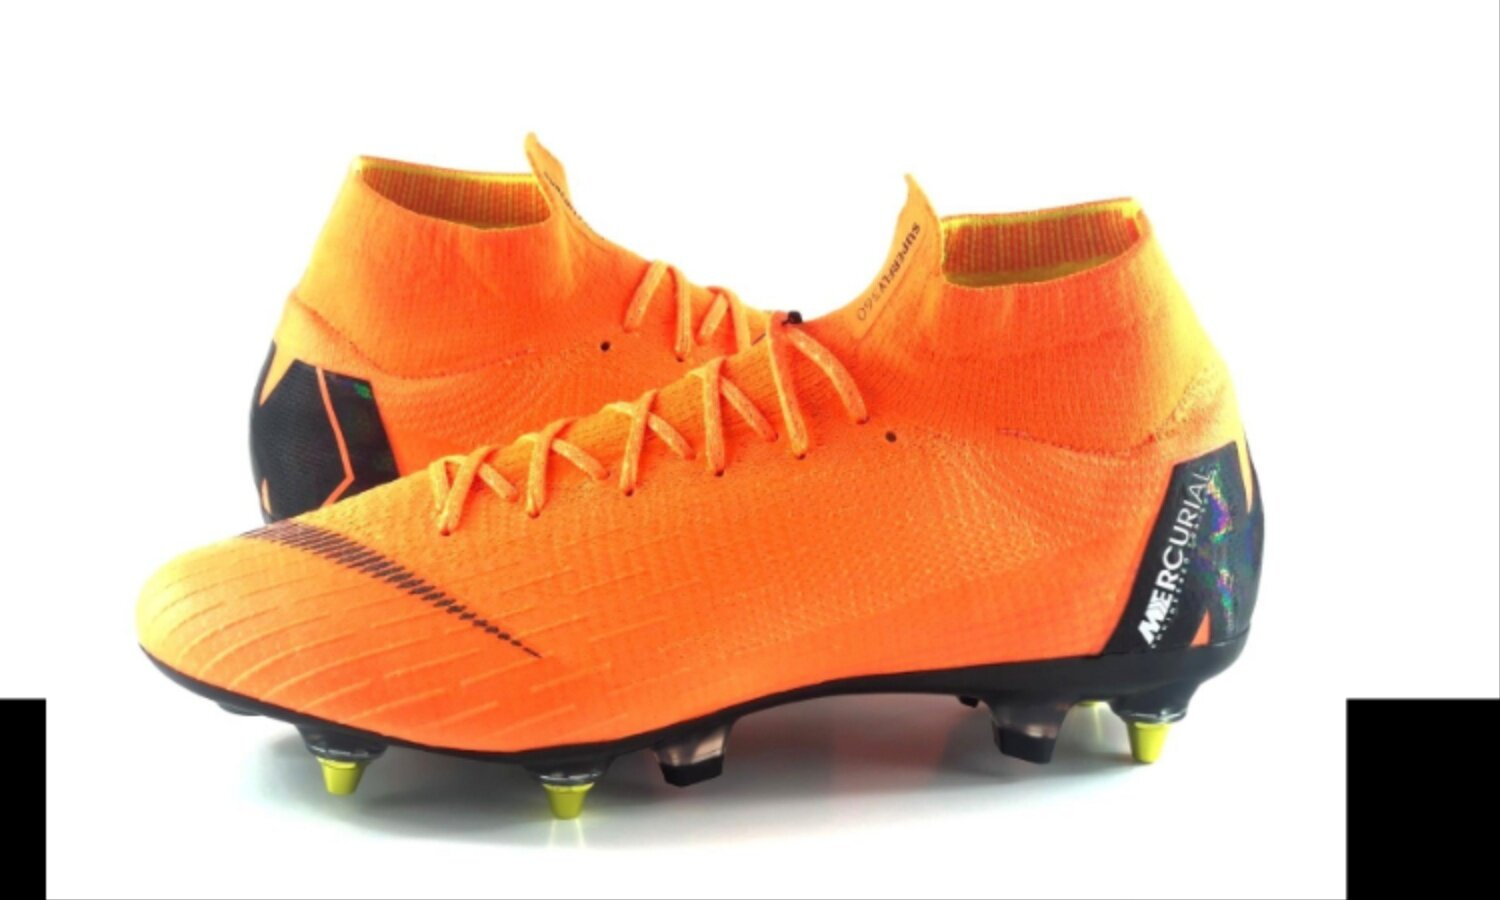 new arrival eaa0b 91256 2019 Fashion Nike_Mercurial Superfly 6 Elite 360 SG Soccer Cleats Mens  Football Shoes Hot Sale